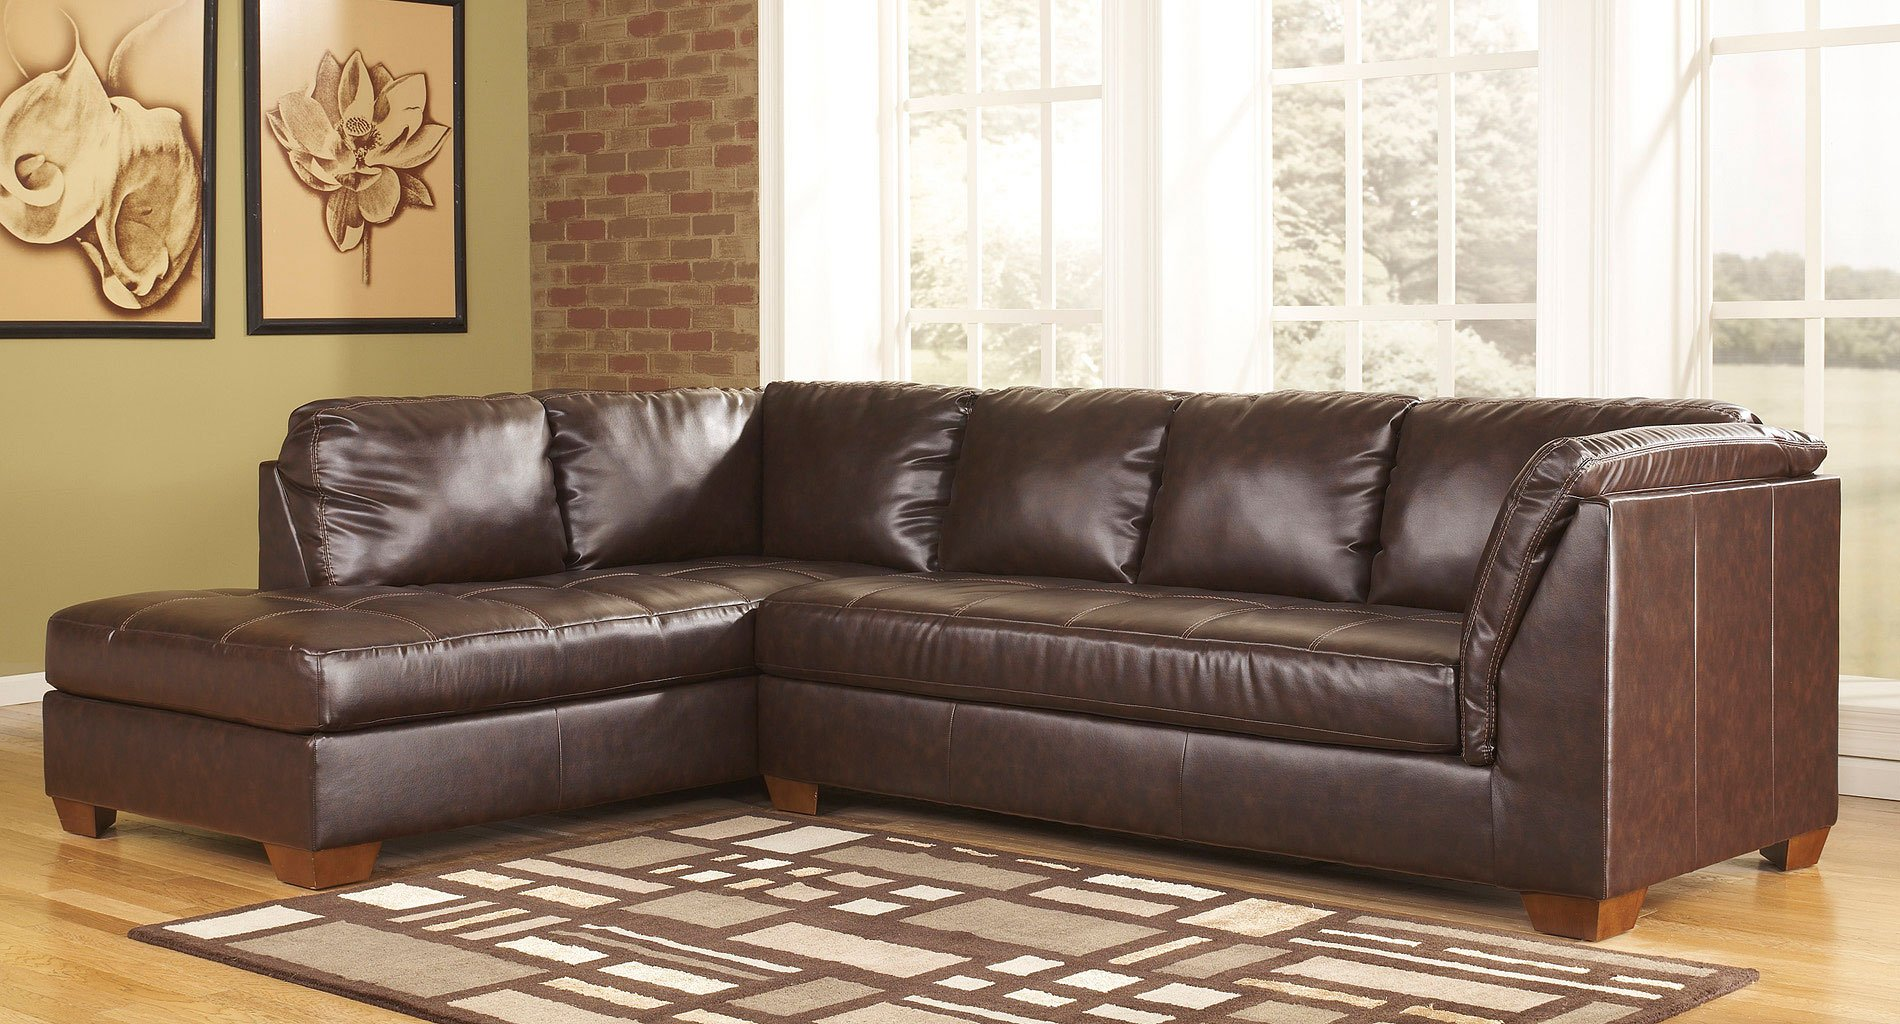 Fairplay DuraBlend Left Facing Chaise Sectional